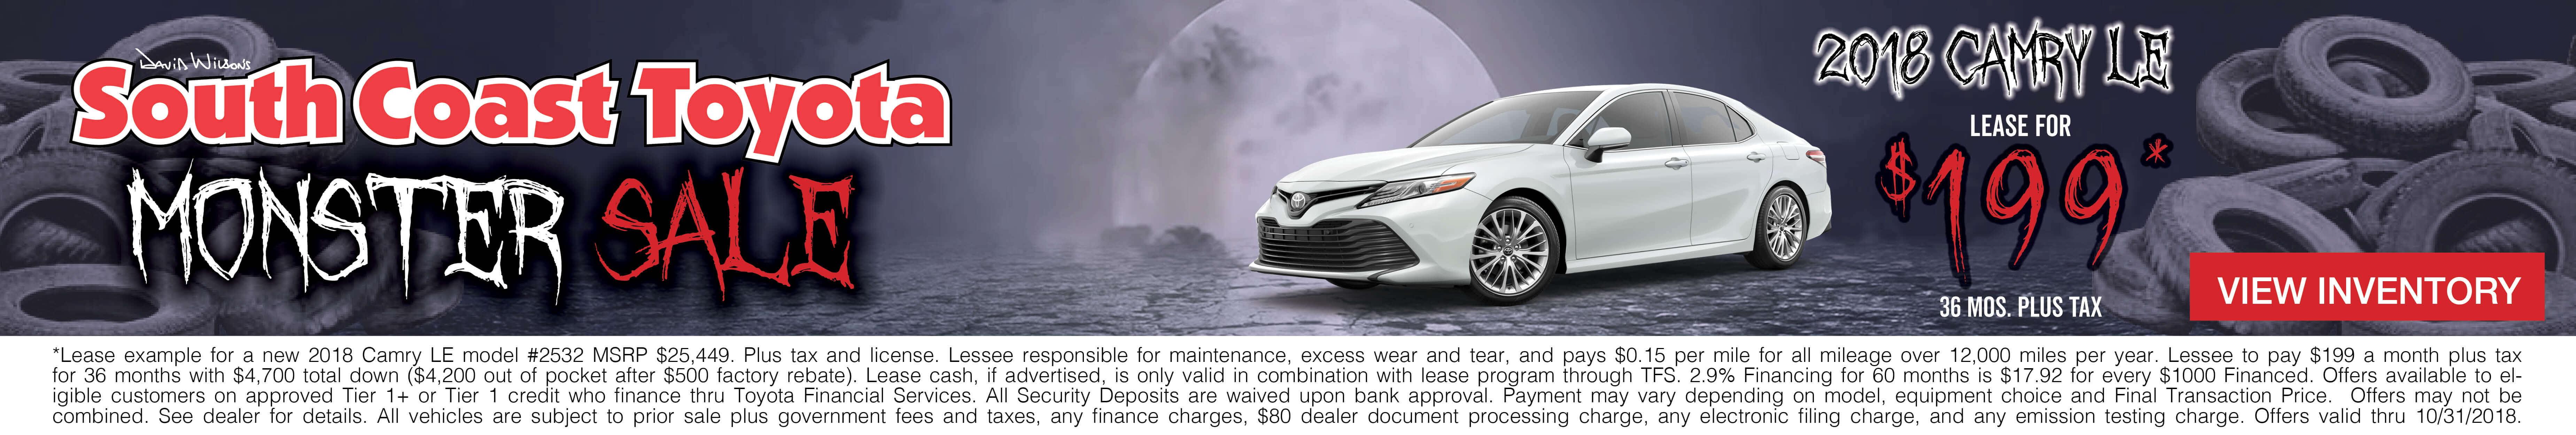 Toyota Camry $209 Lease